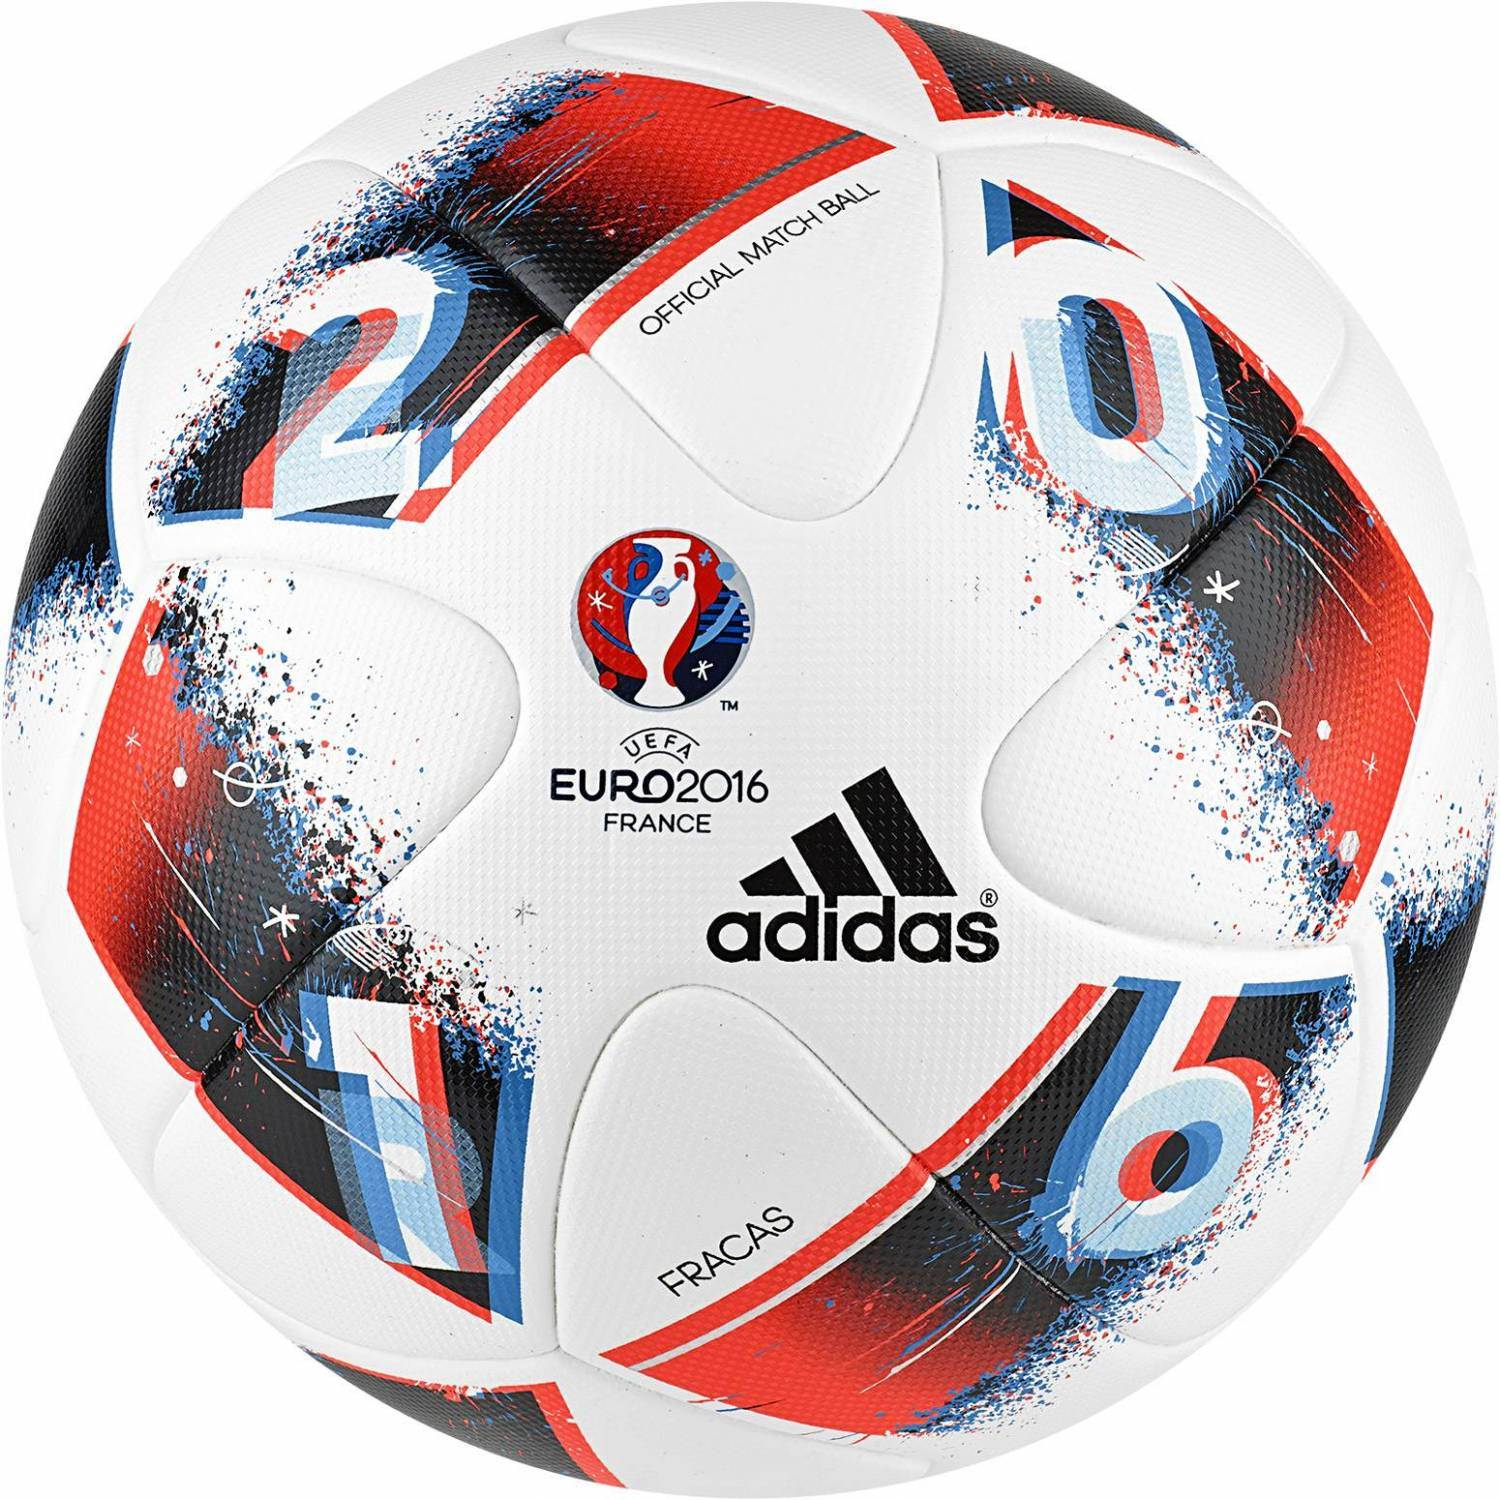 adidas Finale EURO 2016 offizieller Matchball (Größe: 5, white/bright blue/solar red/silver metallic)